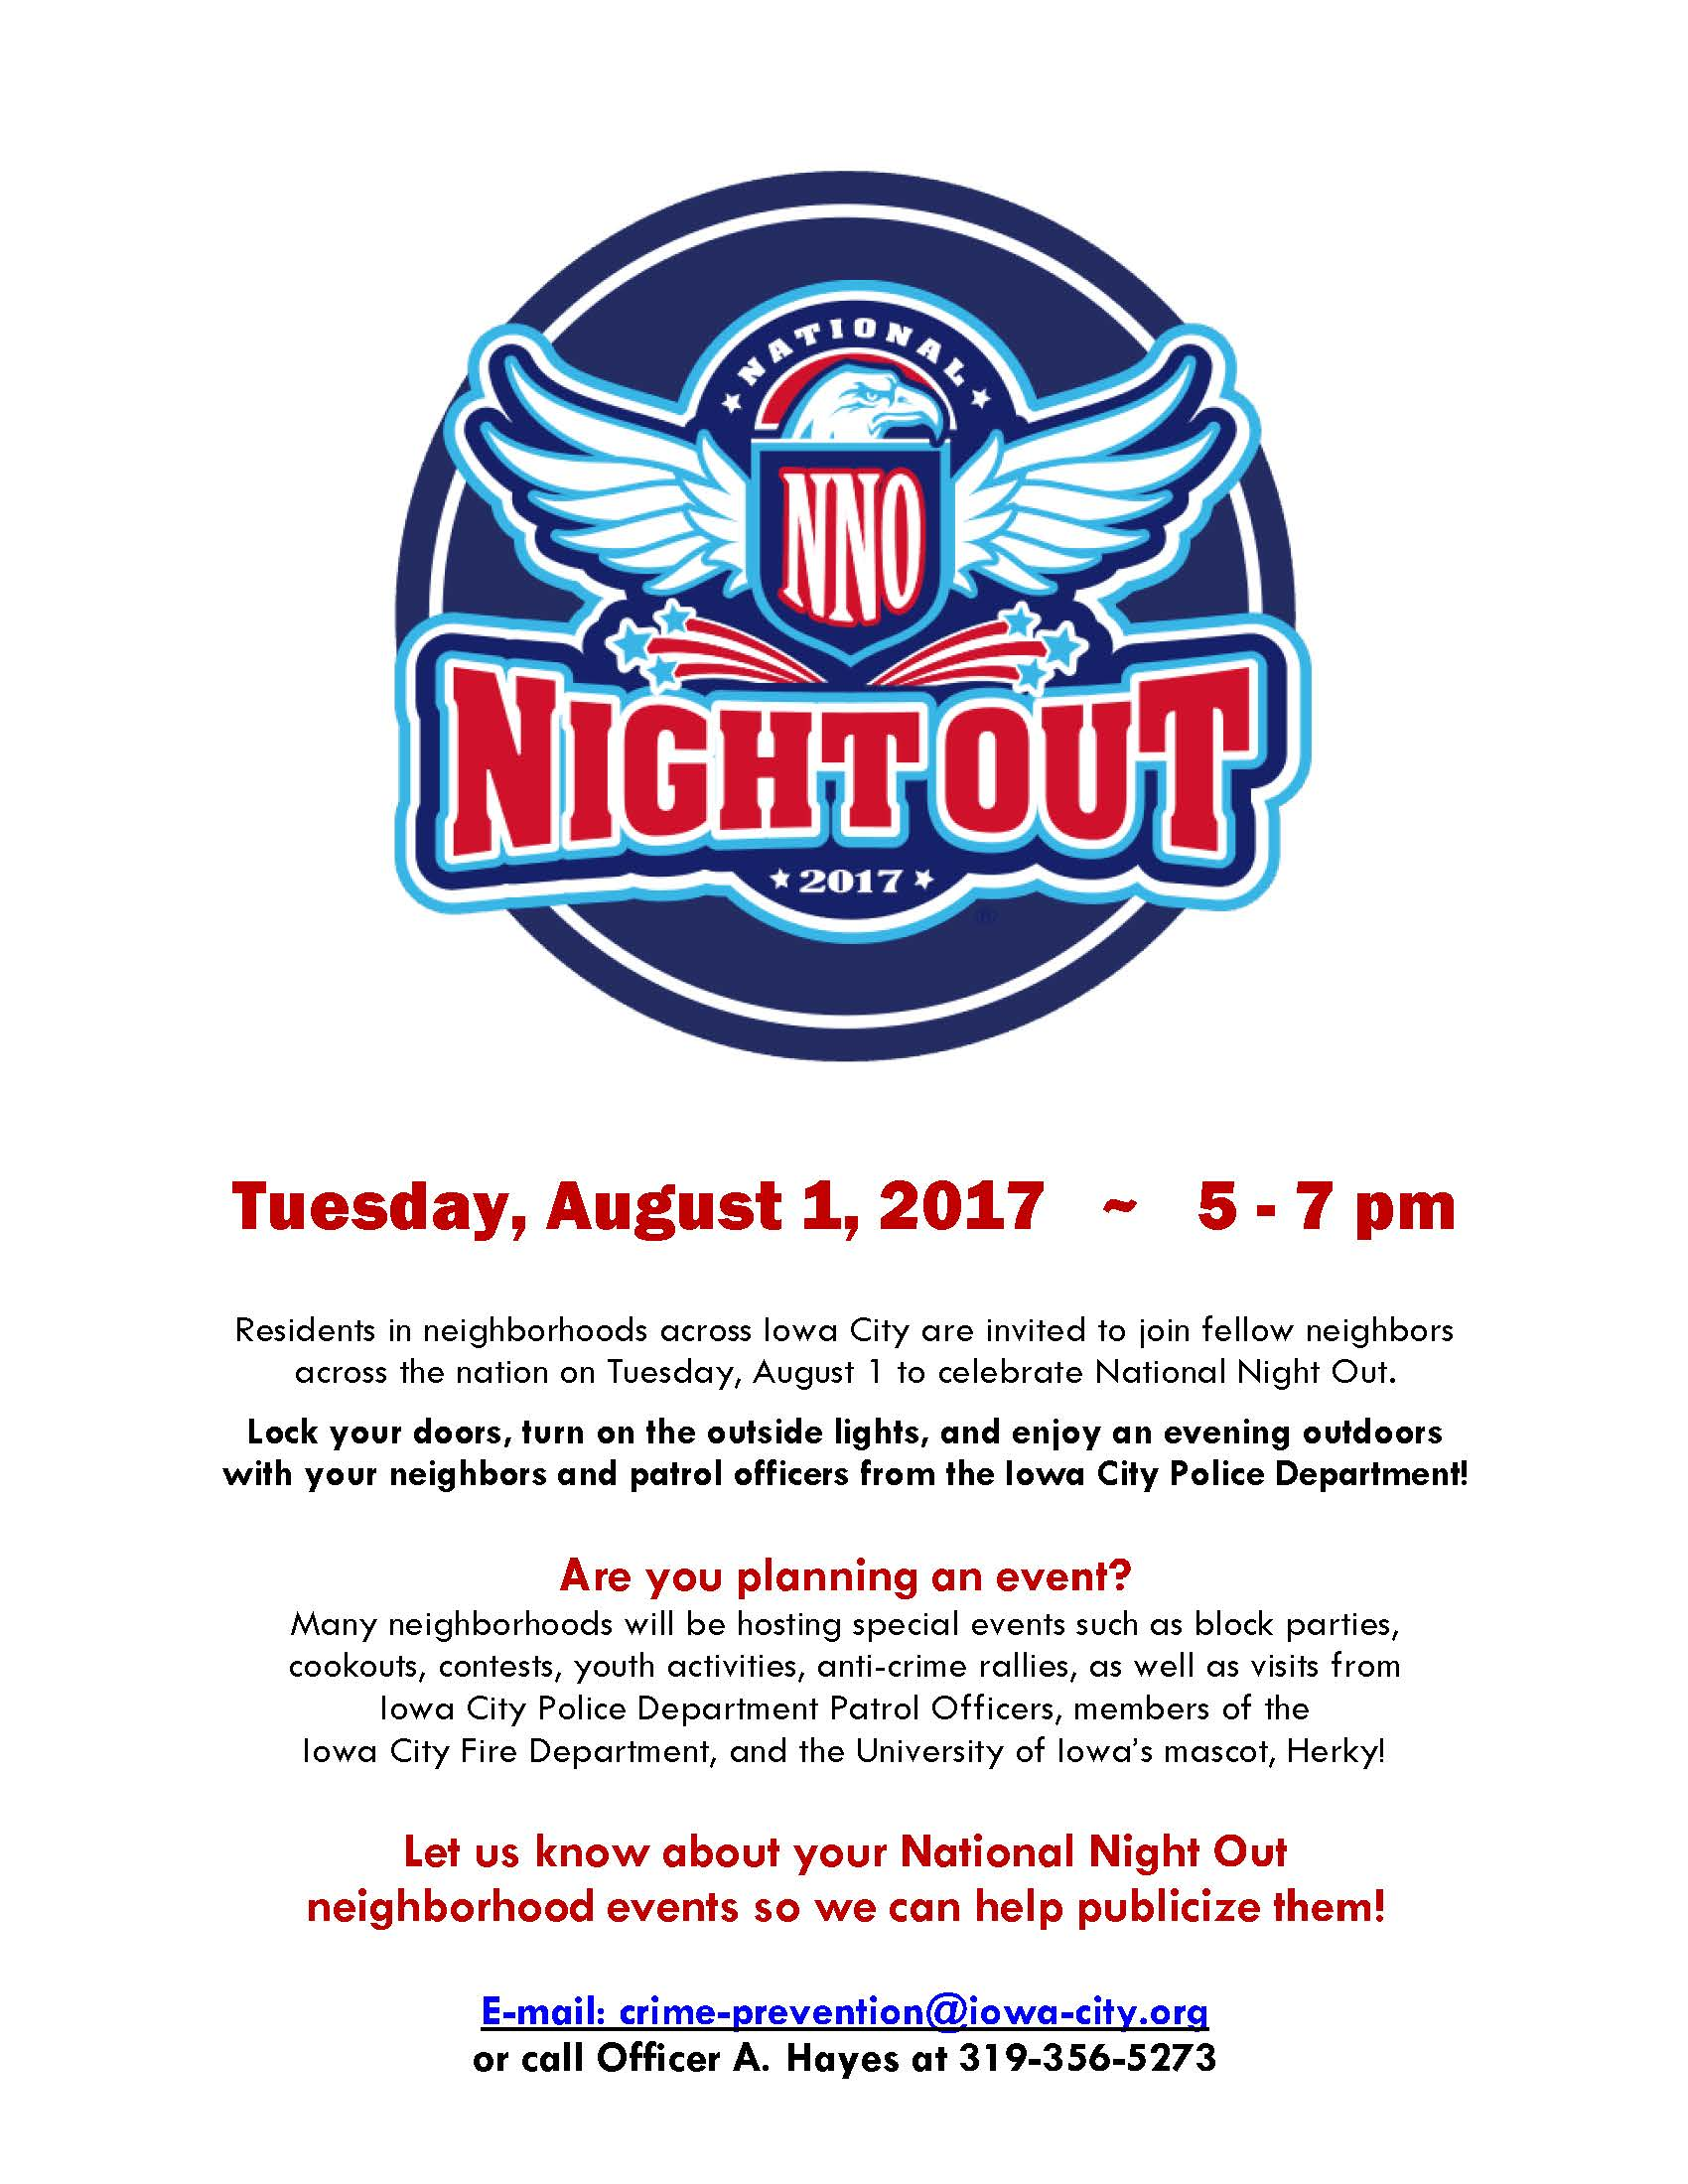 National Night Out poster 2017